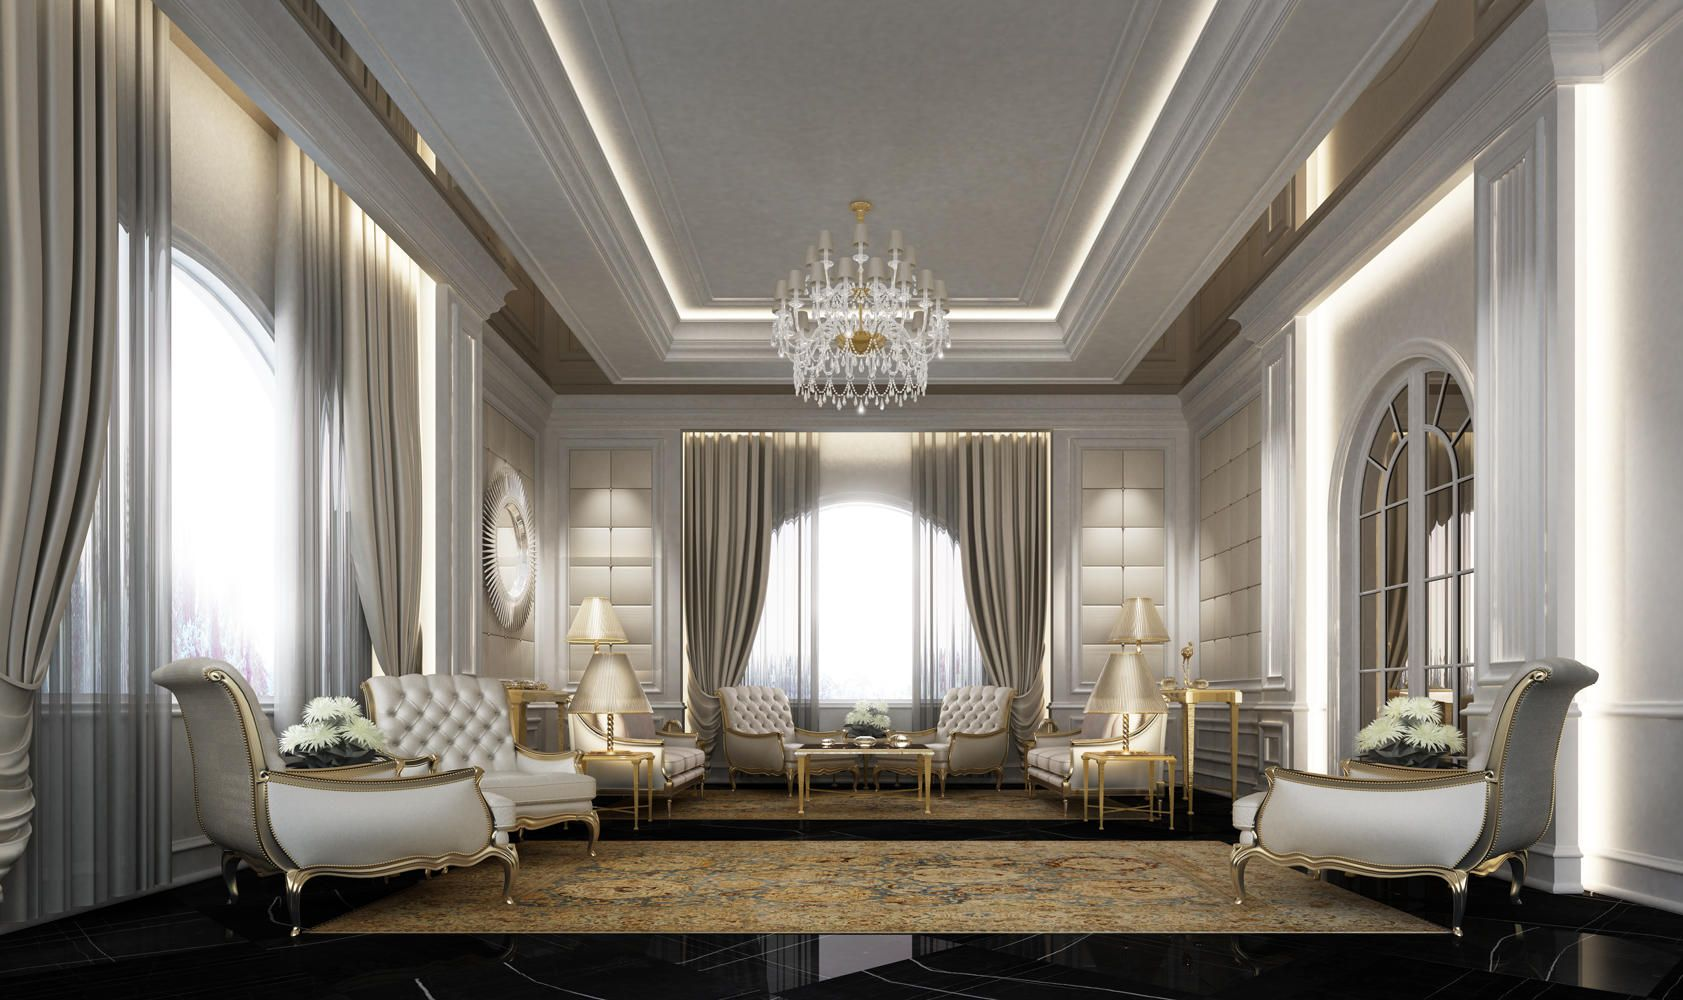 Arabic majlis designs ions design interior design for Luxury home interior design